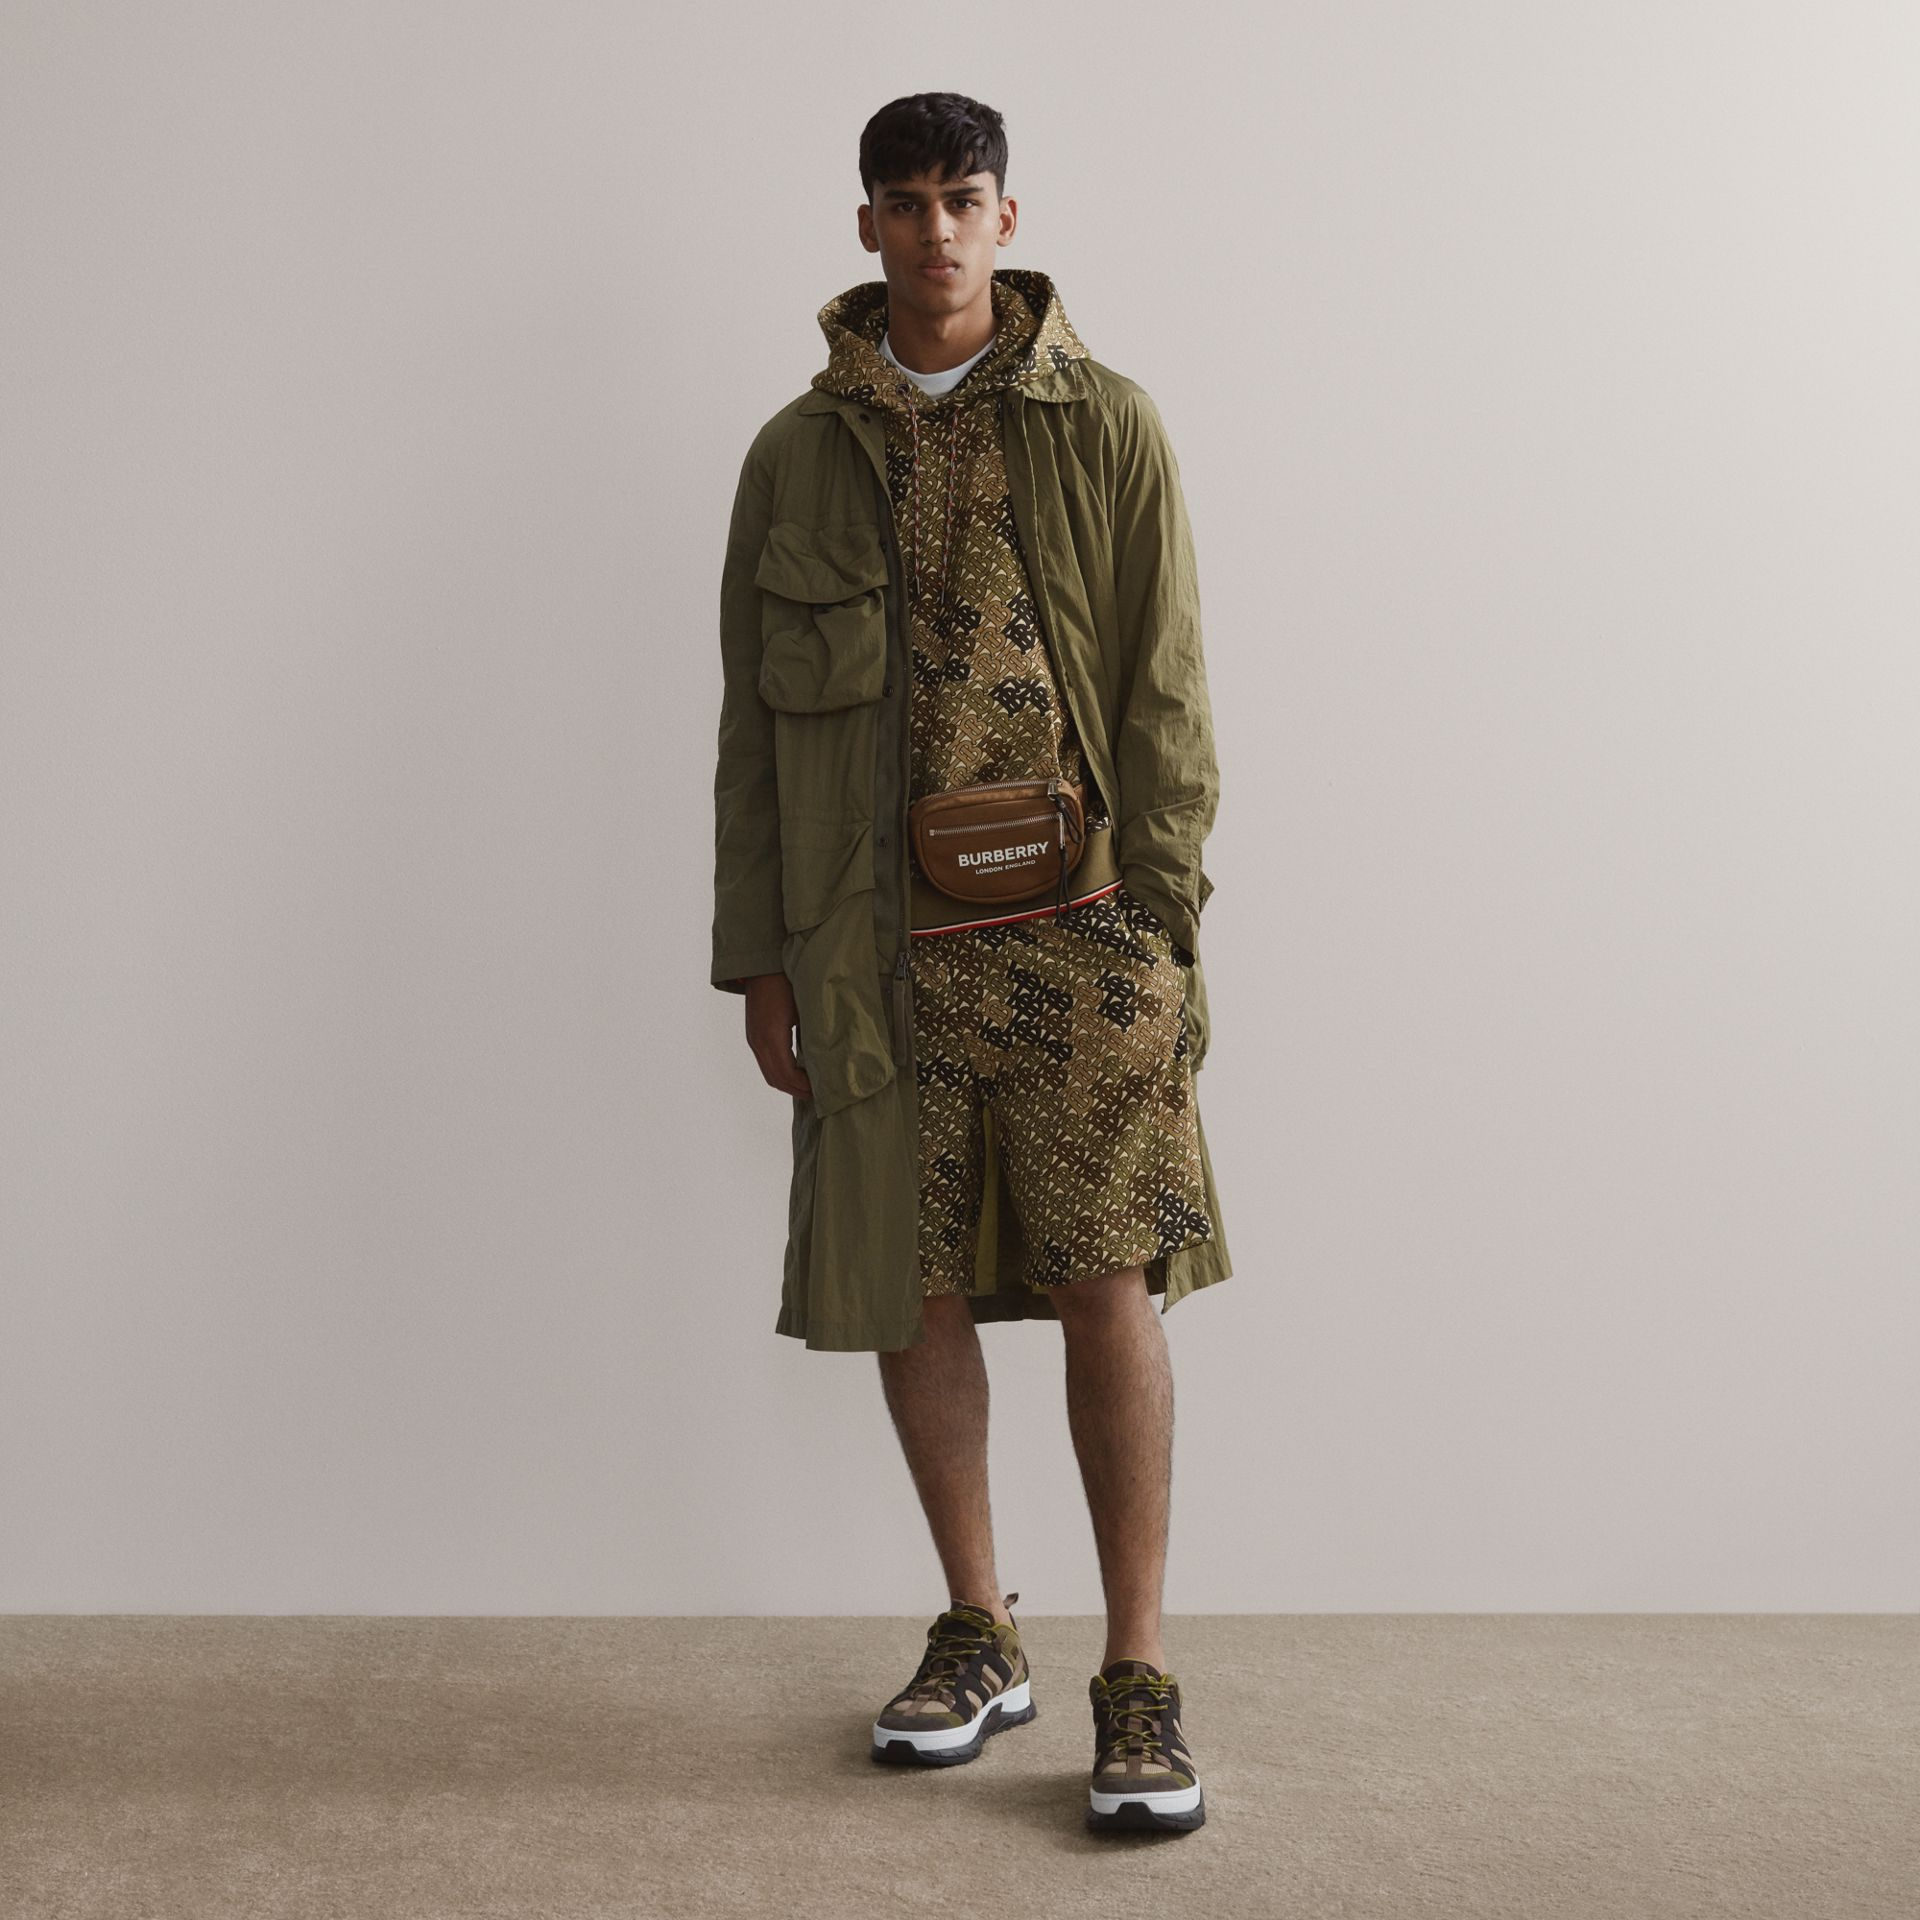 Monogram Print Cotton Drawcord Shorts in Khaki Green - Men | Burberry - gallery image 1